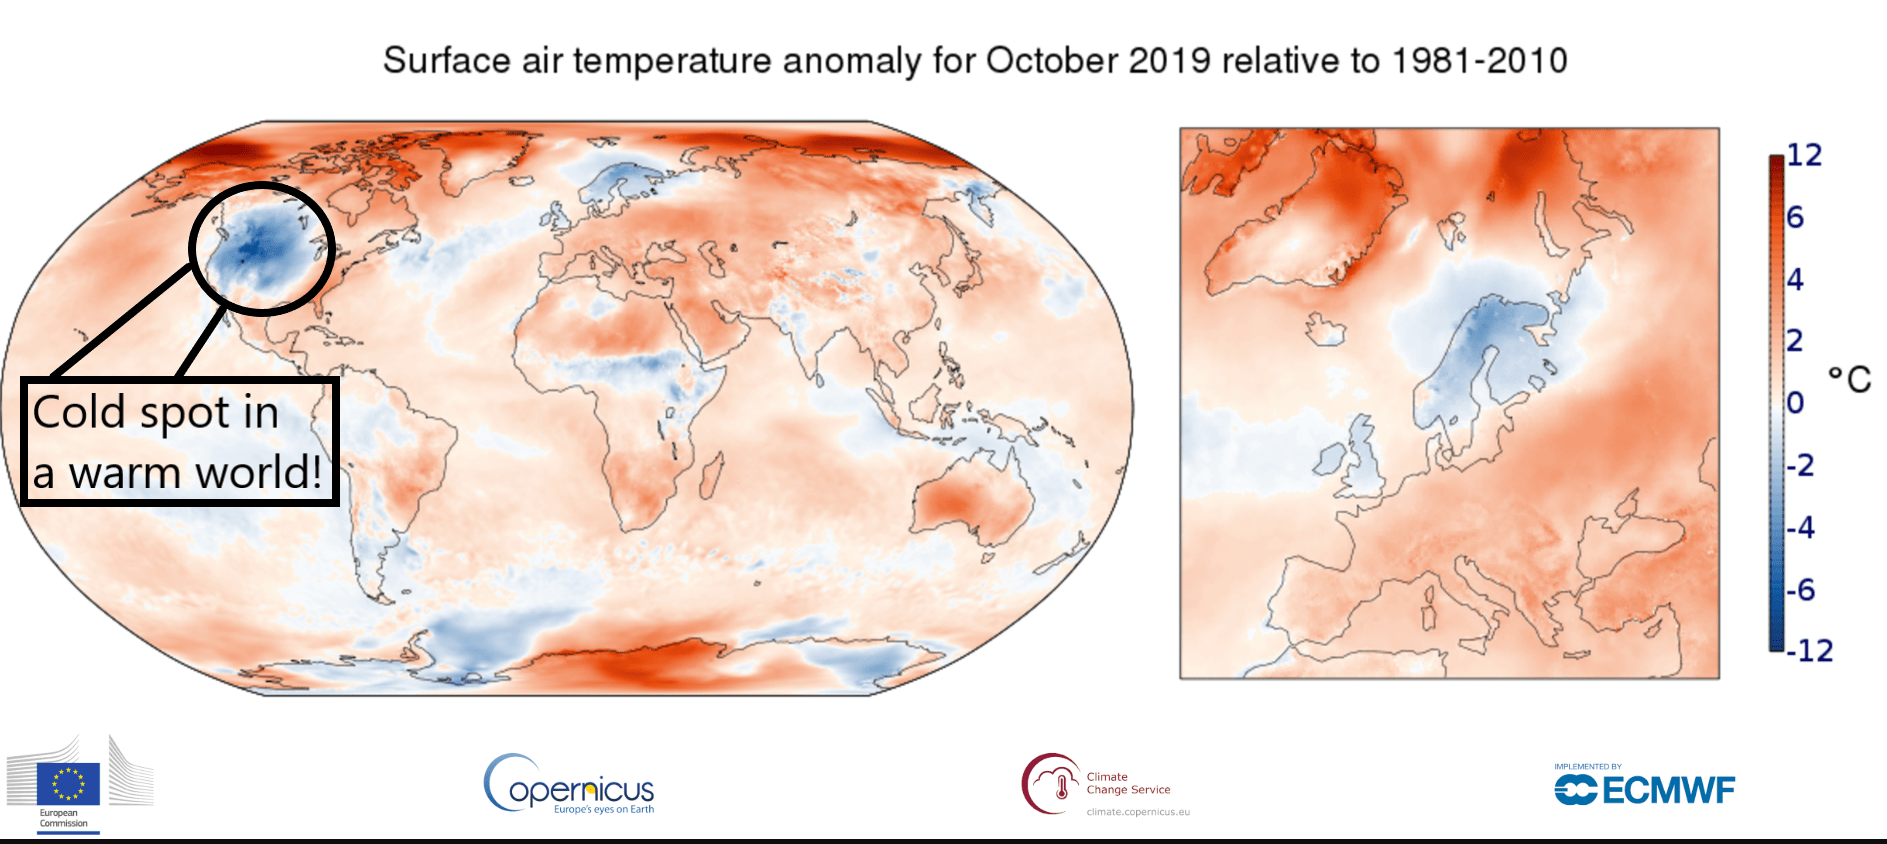 October global temperatures relative to 1981-2010 average